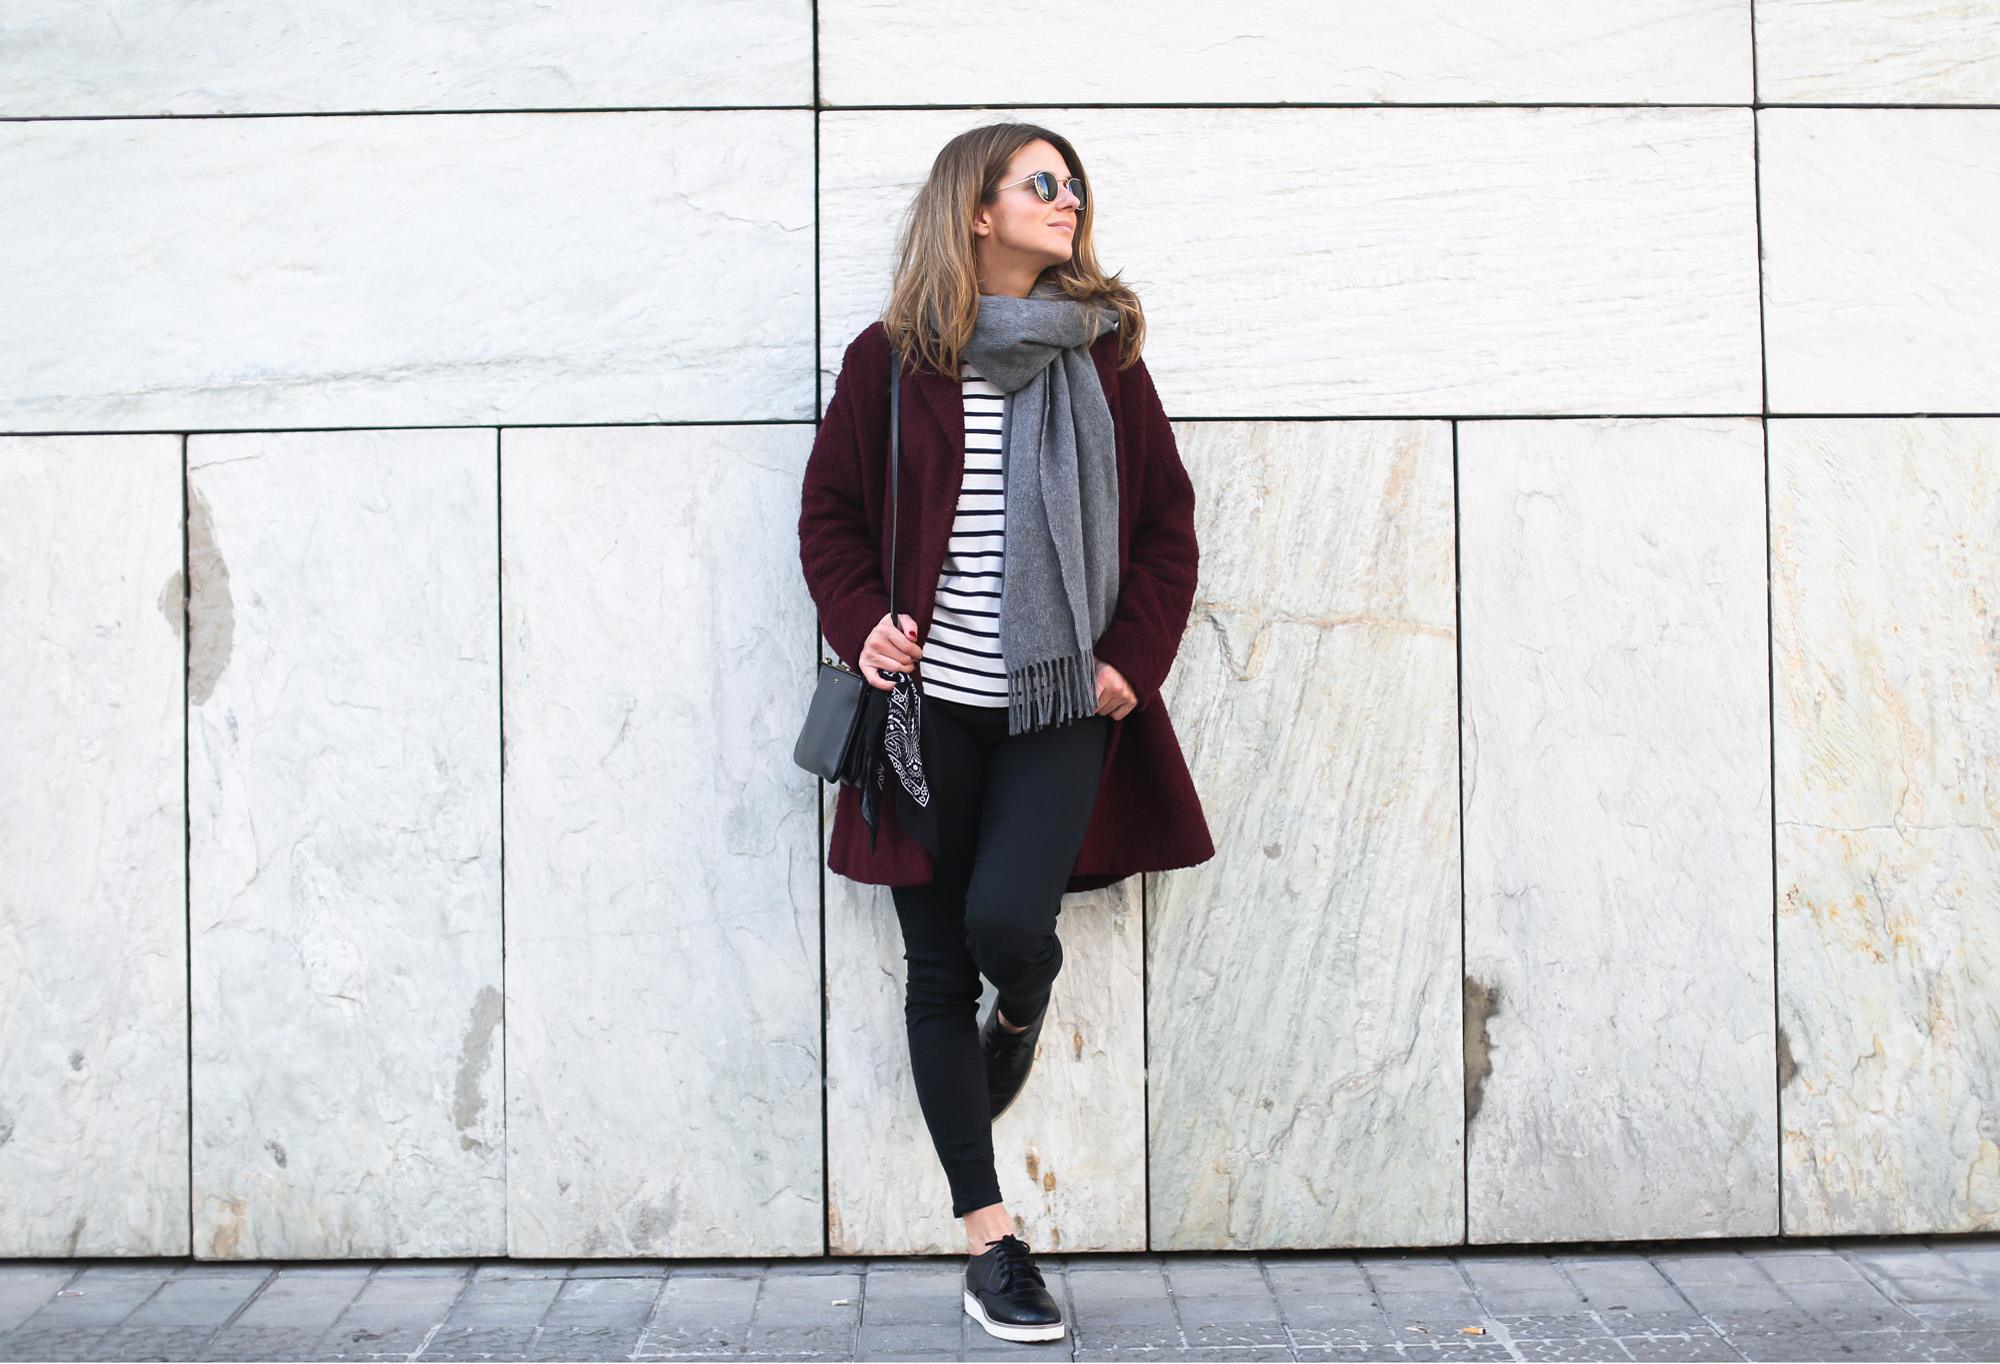 clochet_streetstyle_artemisia_leather_platform_brogues_acnestudios_canada_wool_scarf-3